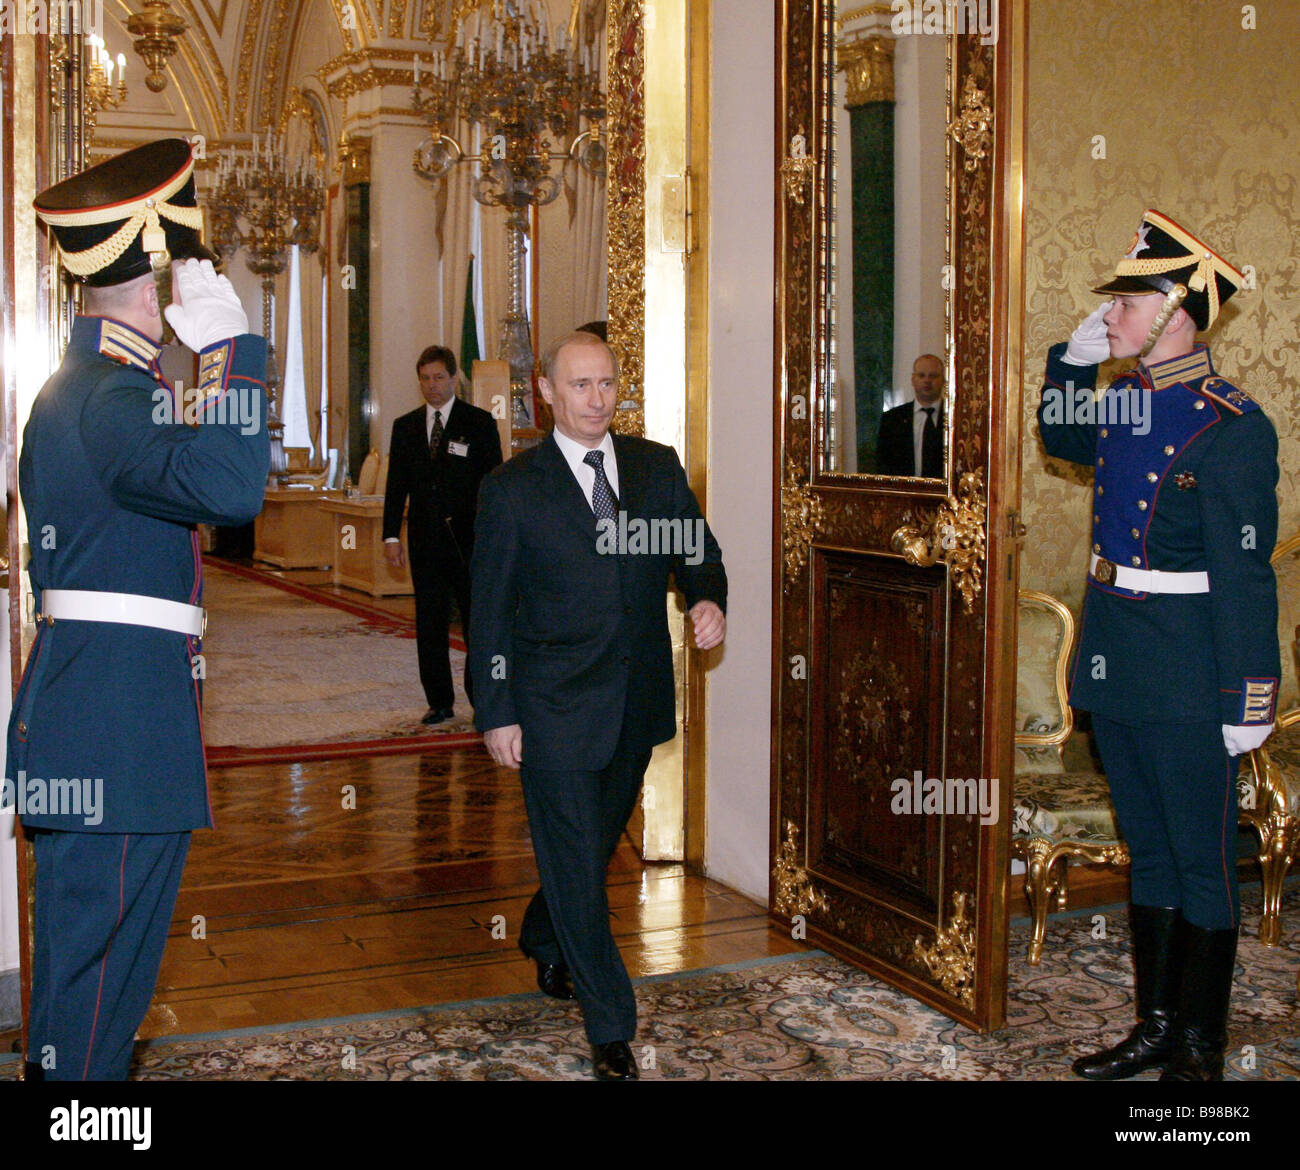 Russian President Vladimir Putin entering the green hall of the Grand Kremlin Palace before the meeting with his Stock Photo